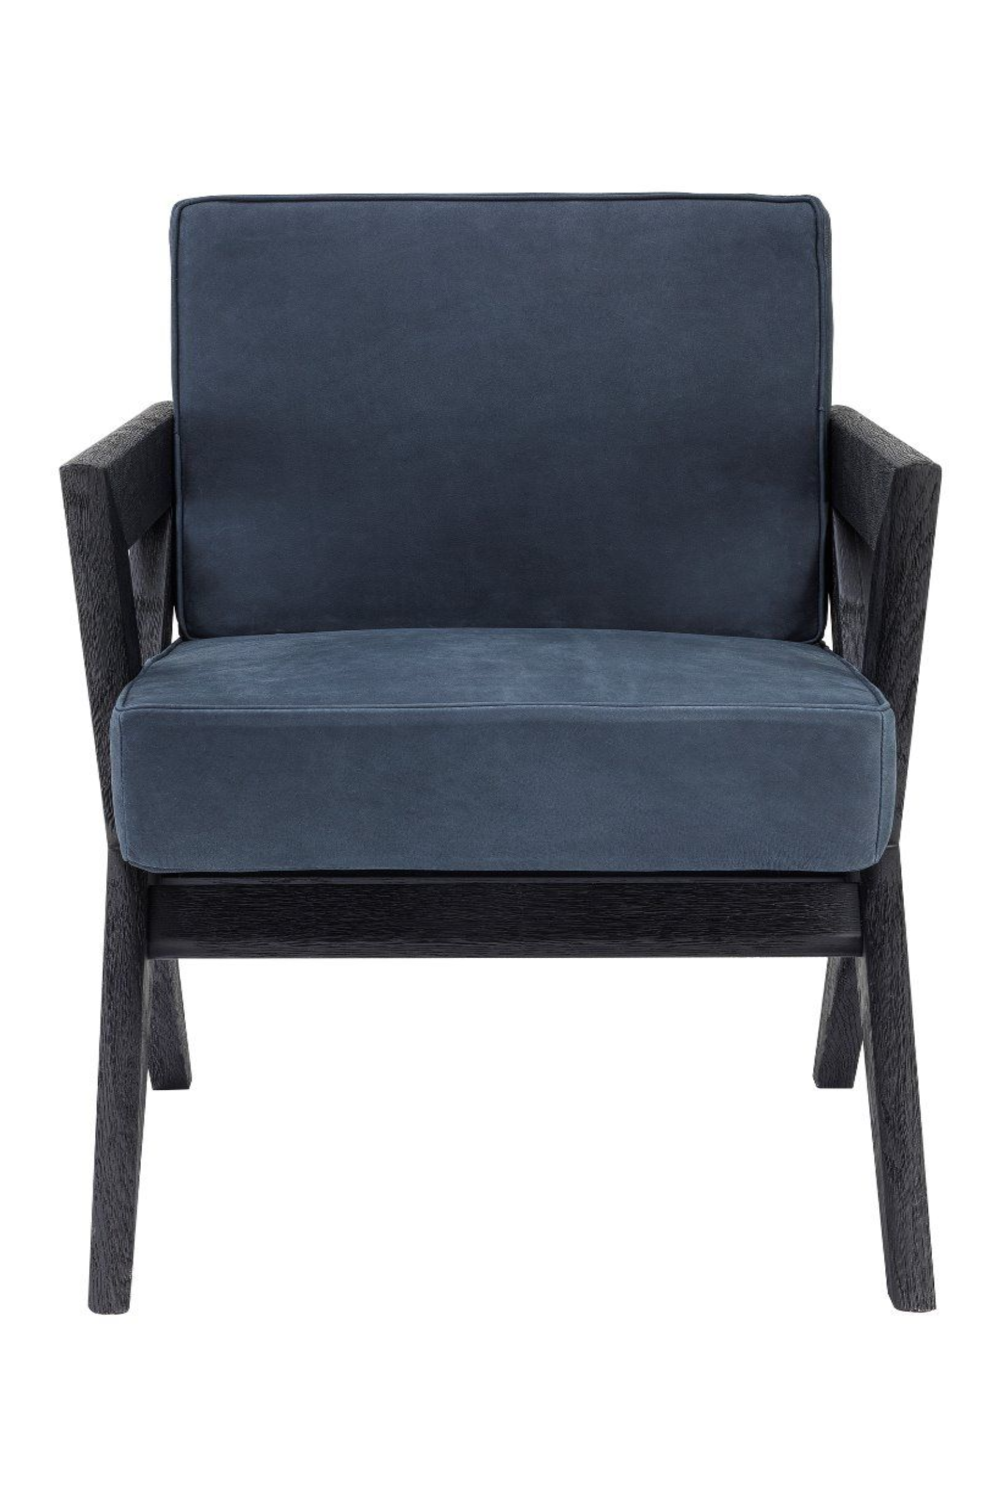 Blue X-Leg Wooden Dining Armchair | Eichholtz Felippe | Woodfurniture.com